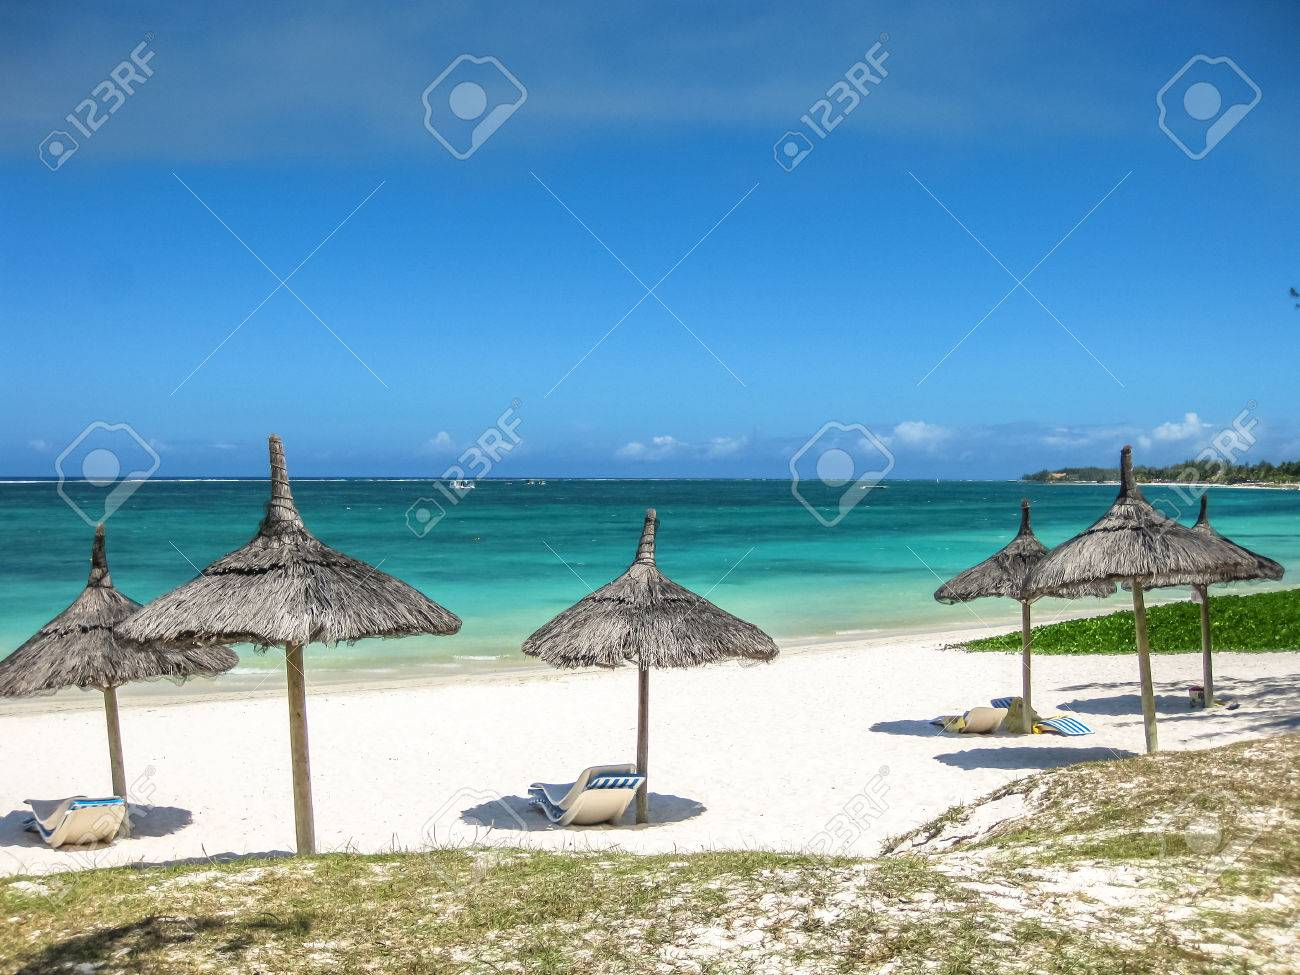 Thatch palapa umbrellas in the famous Belle Mare Beach, Mauritius, Indian Ocean, Africa. - 45589200